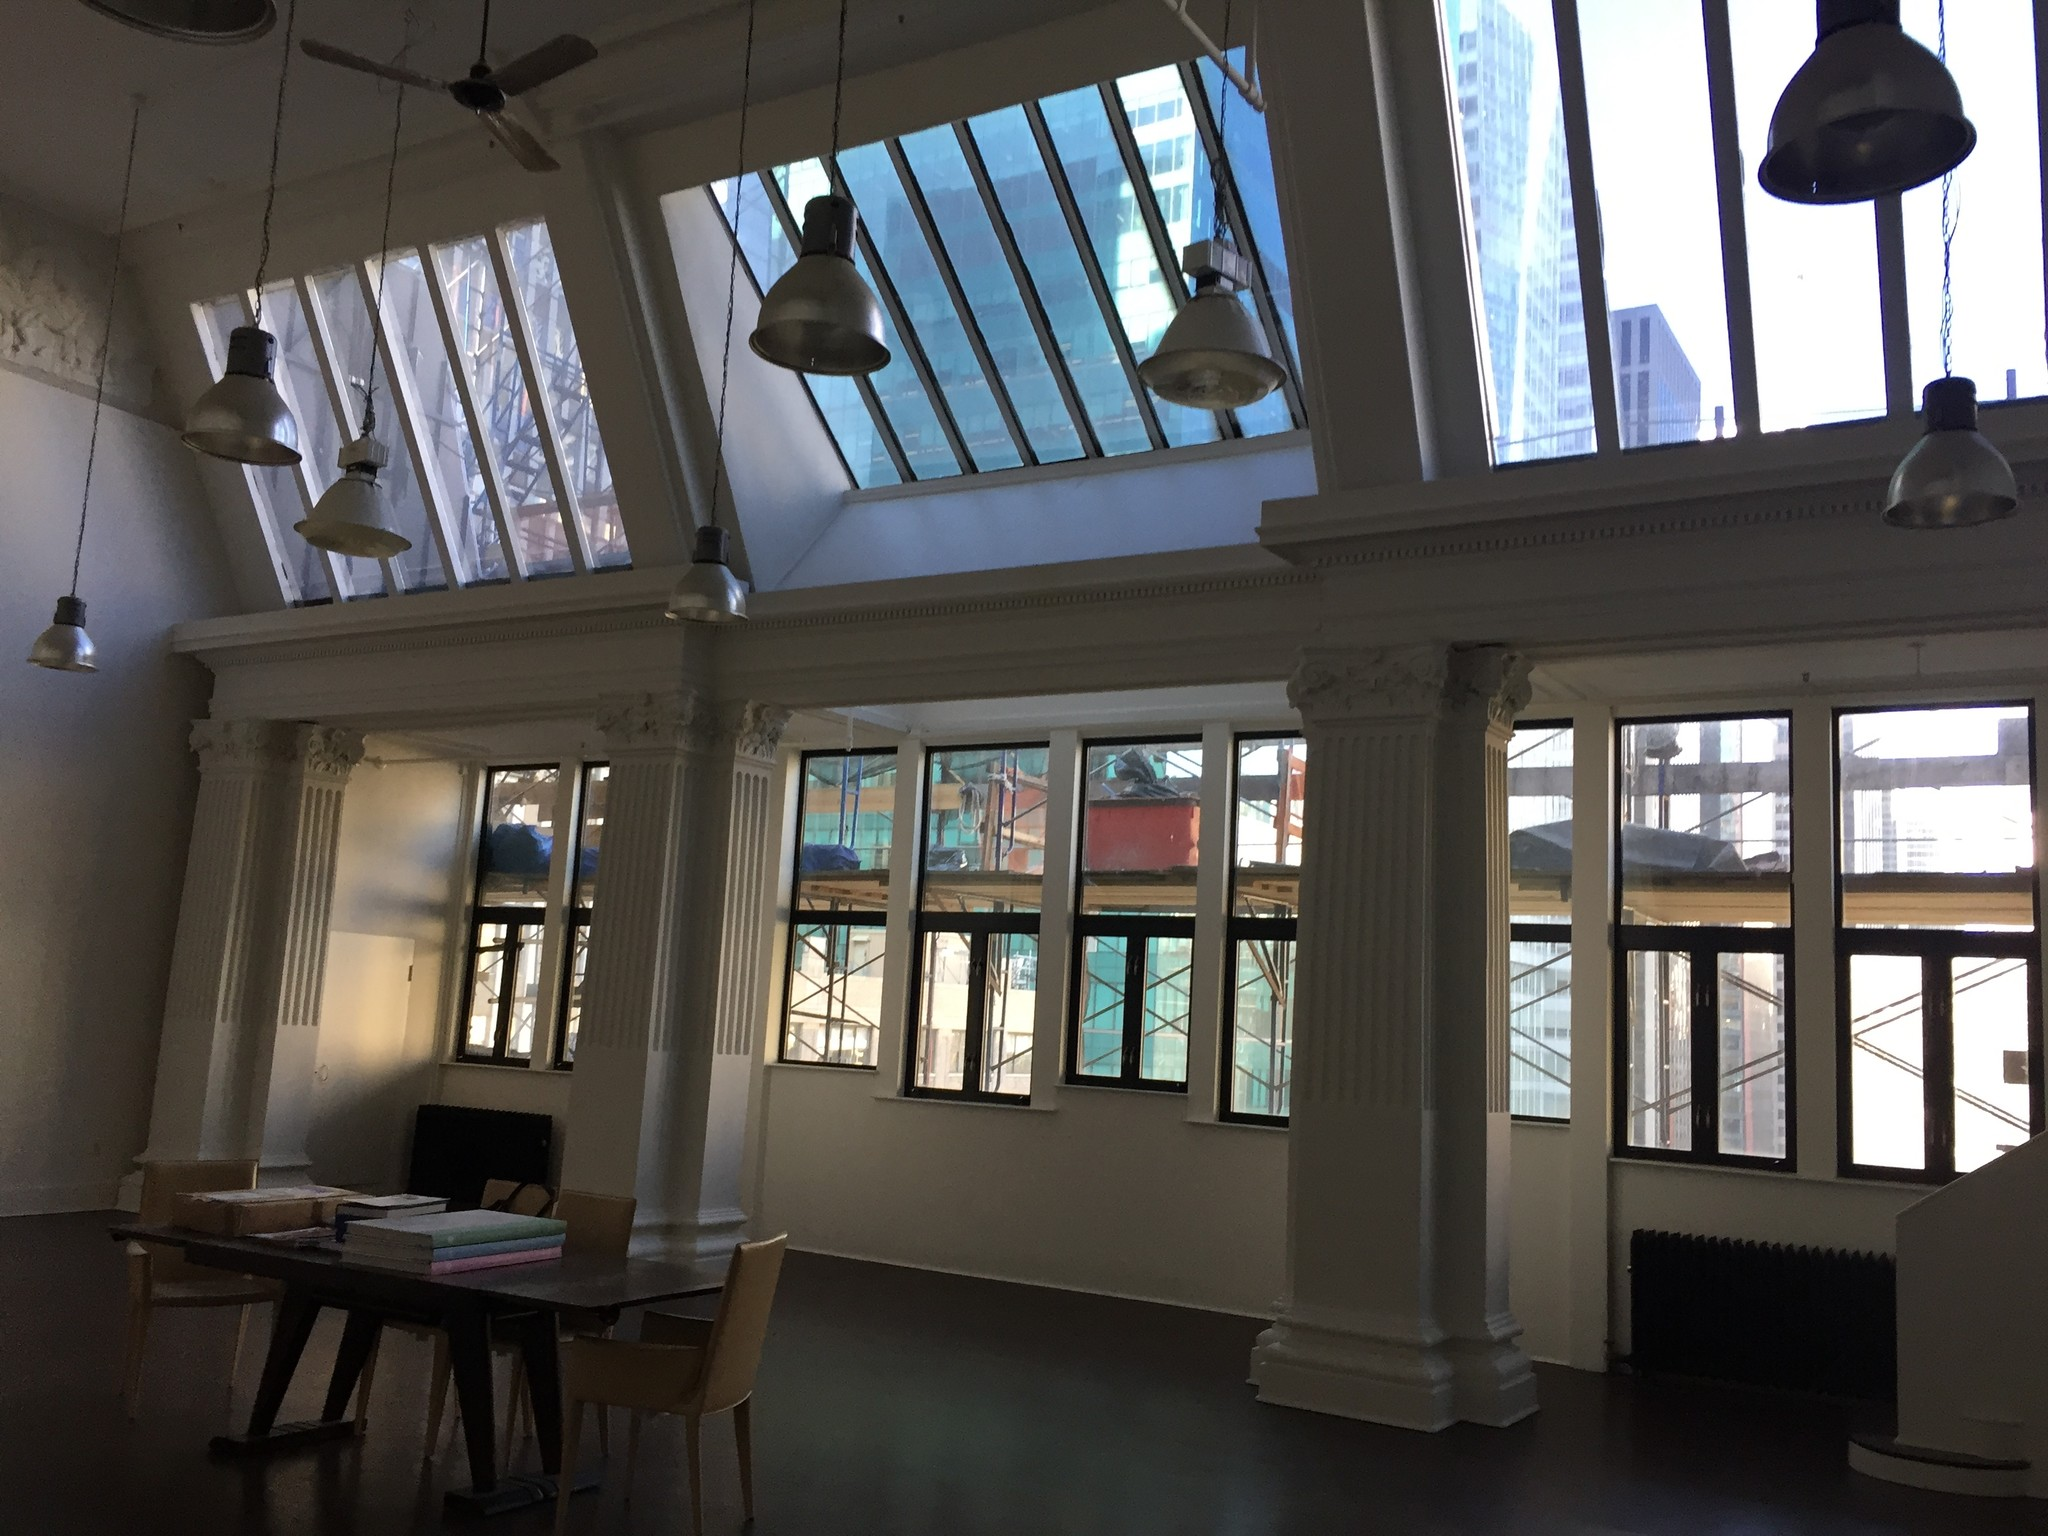 Bryant Park, NYC Class A Office Space for lease